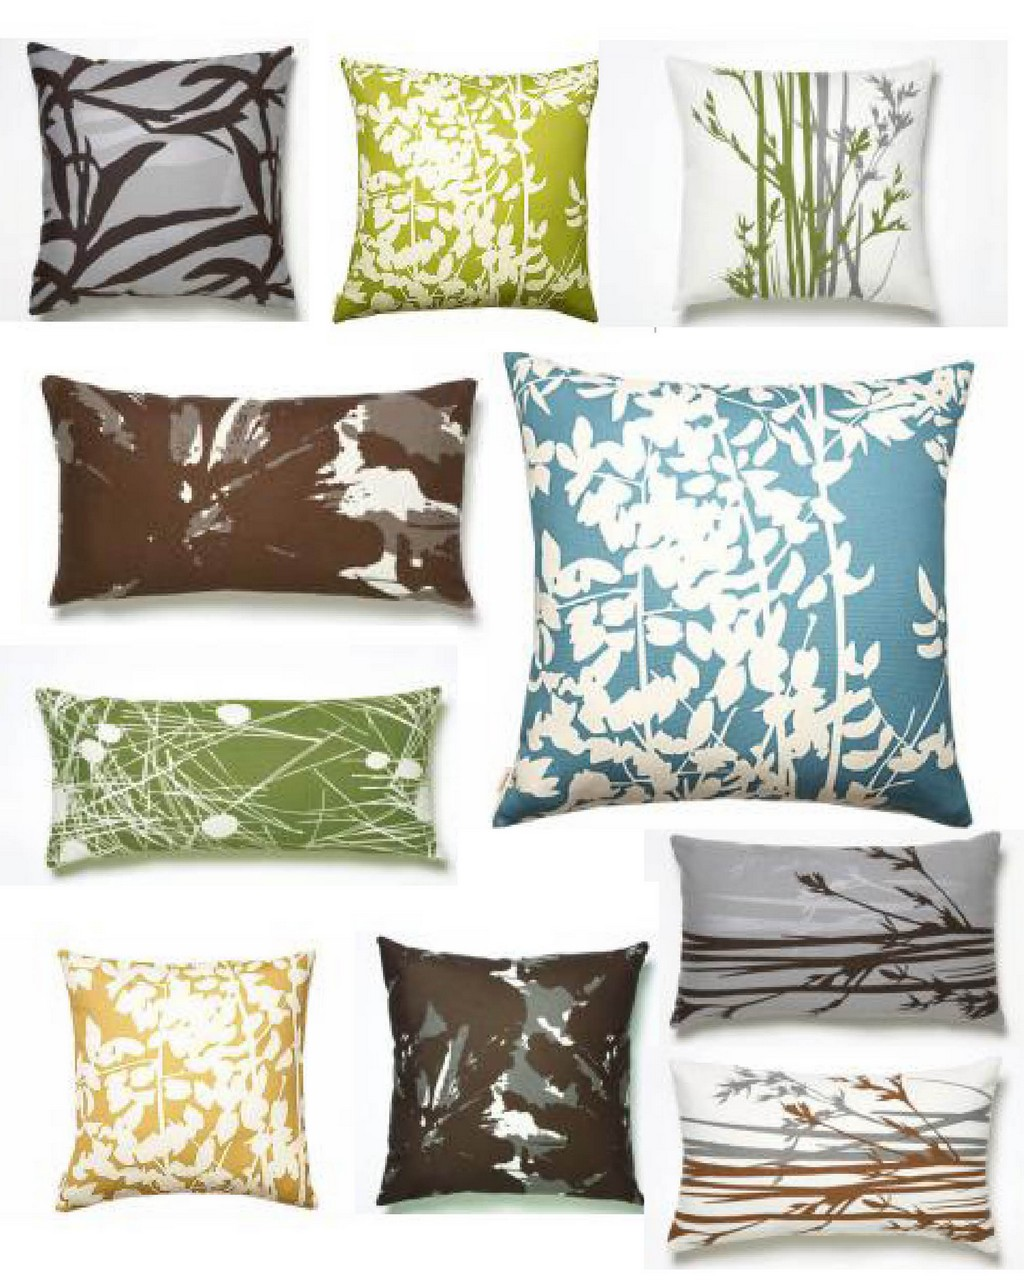 bedroom pillows, chair pillows, memory foam pillows, goose down pillows